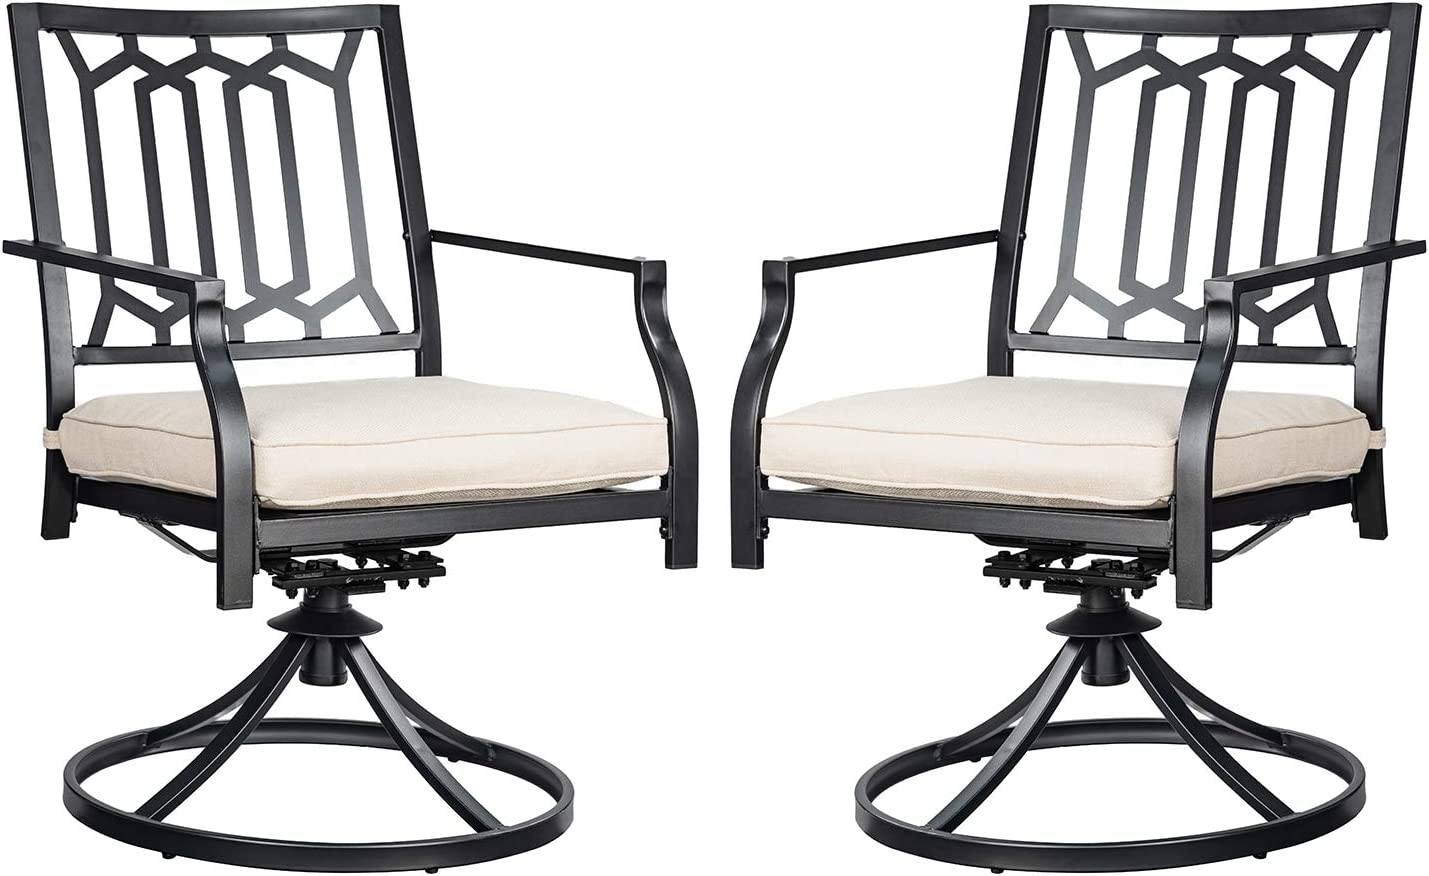 Swivel Patio Chairs Set of 2 Outdoor Metal Dining Rocker Chair for Garden Backyard Bistro Furniture Set with Cushion